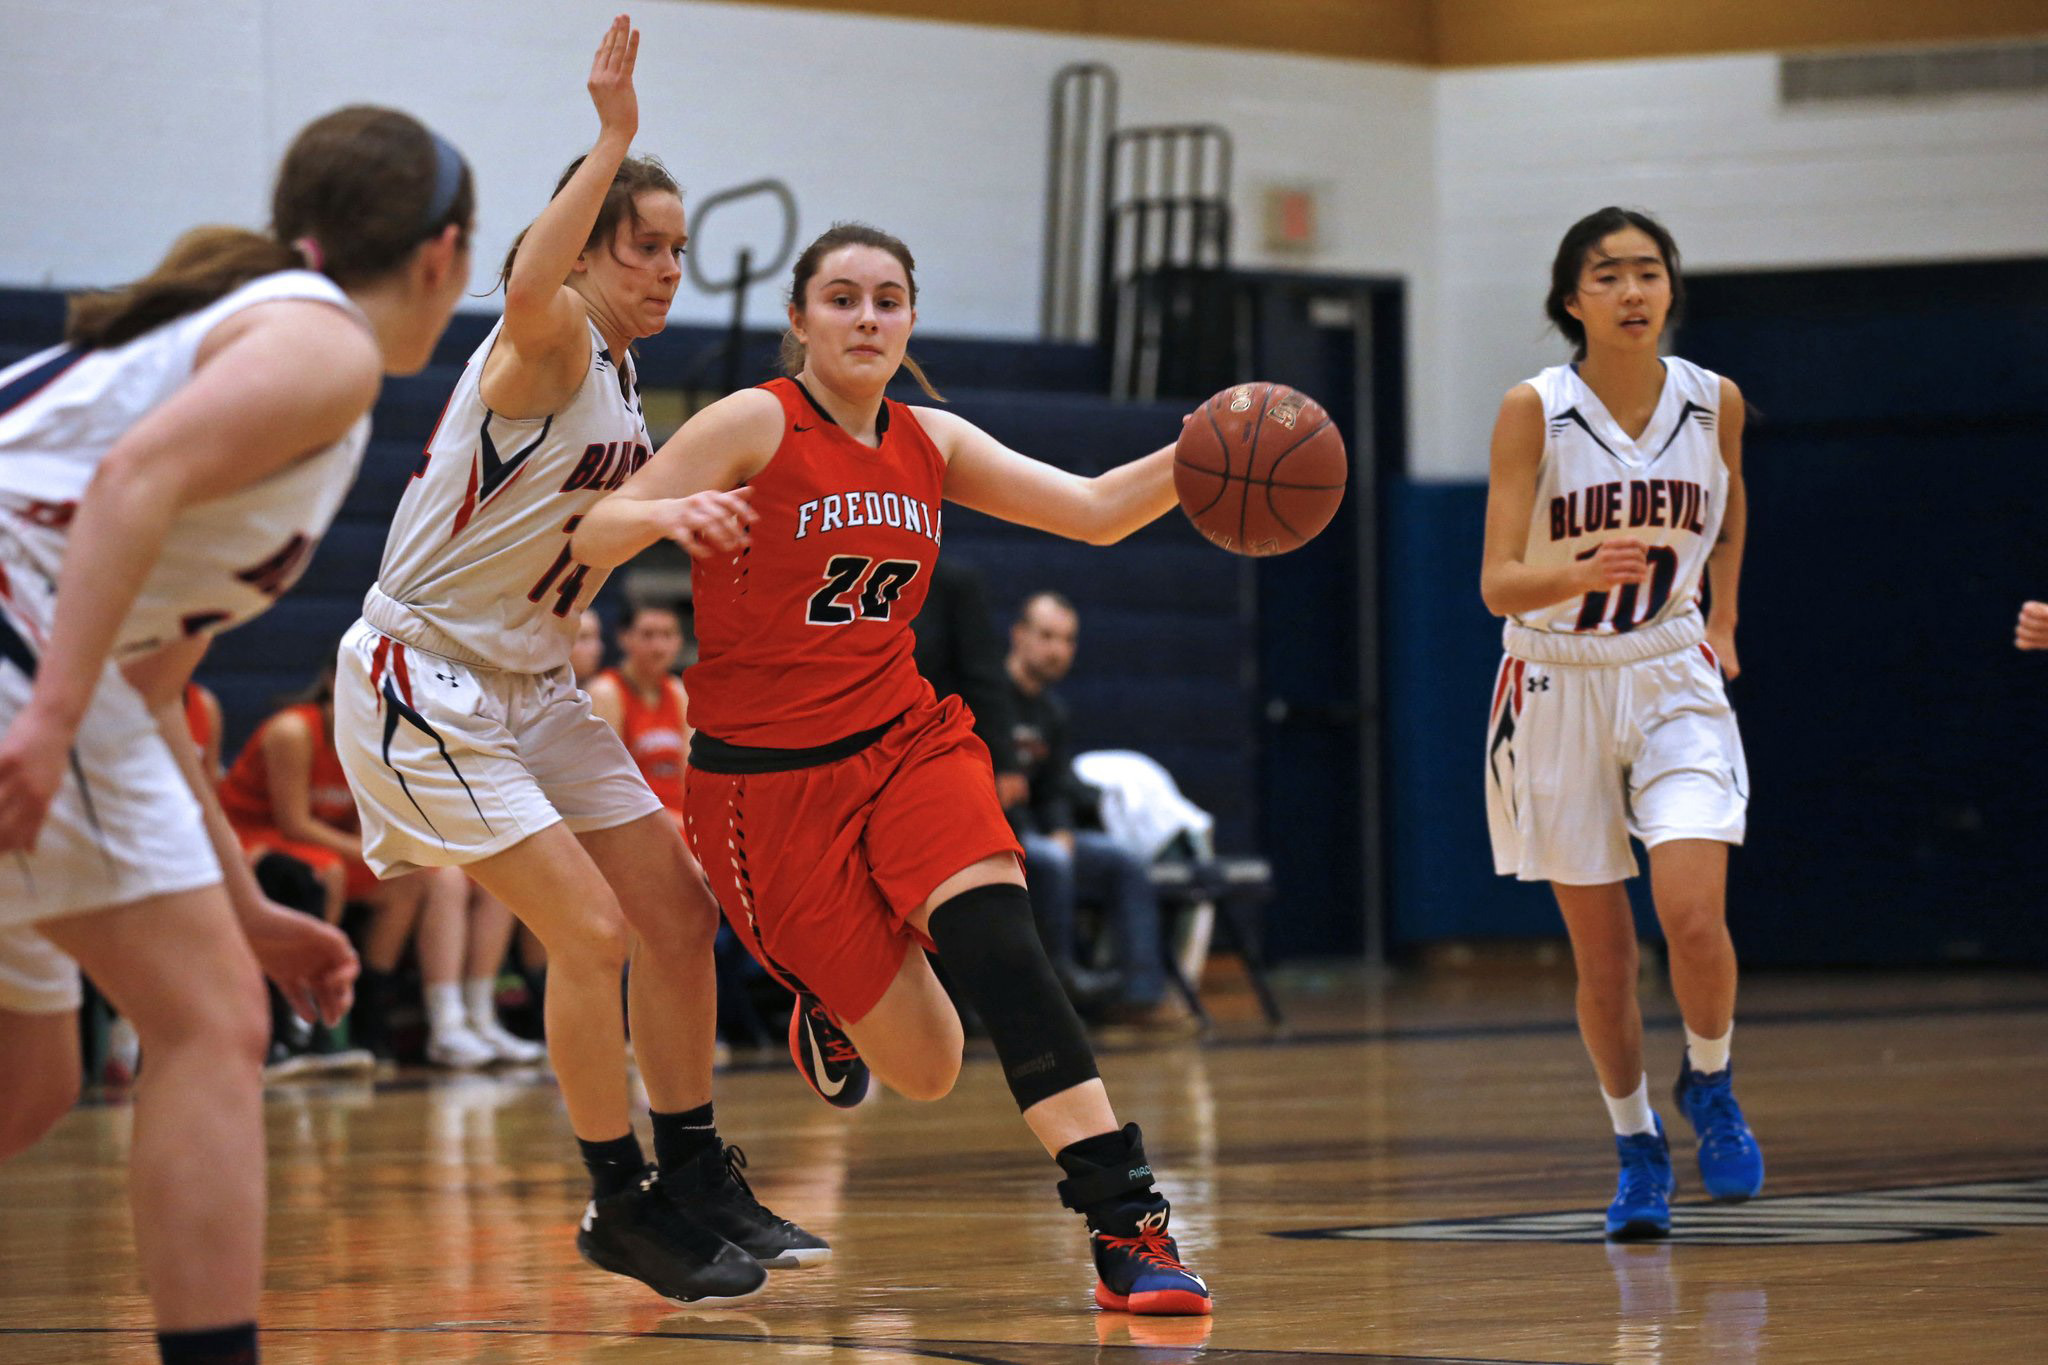 Fredonia's Katie Price drives to the basket against East Aurora during Thursday's Section VI Class B-1 semifinal. Fredonia advanced as Price finished with nine points. (Robert Kirkham/Buffalo News)